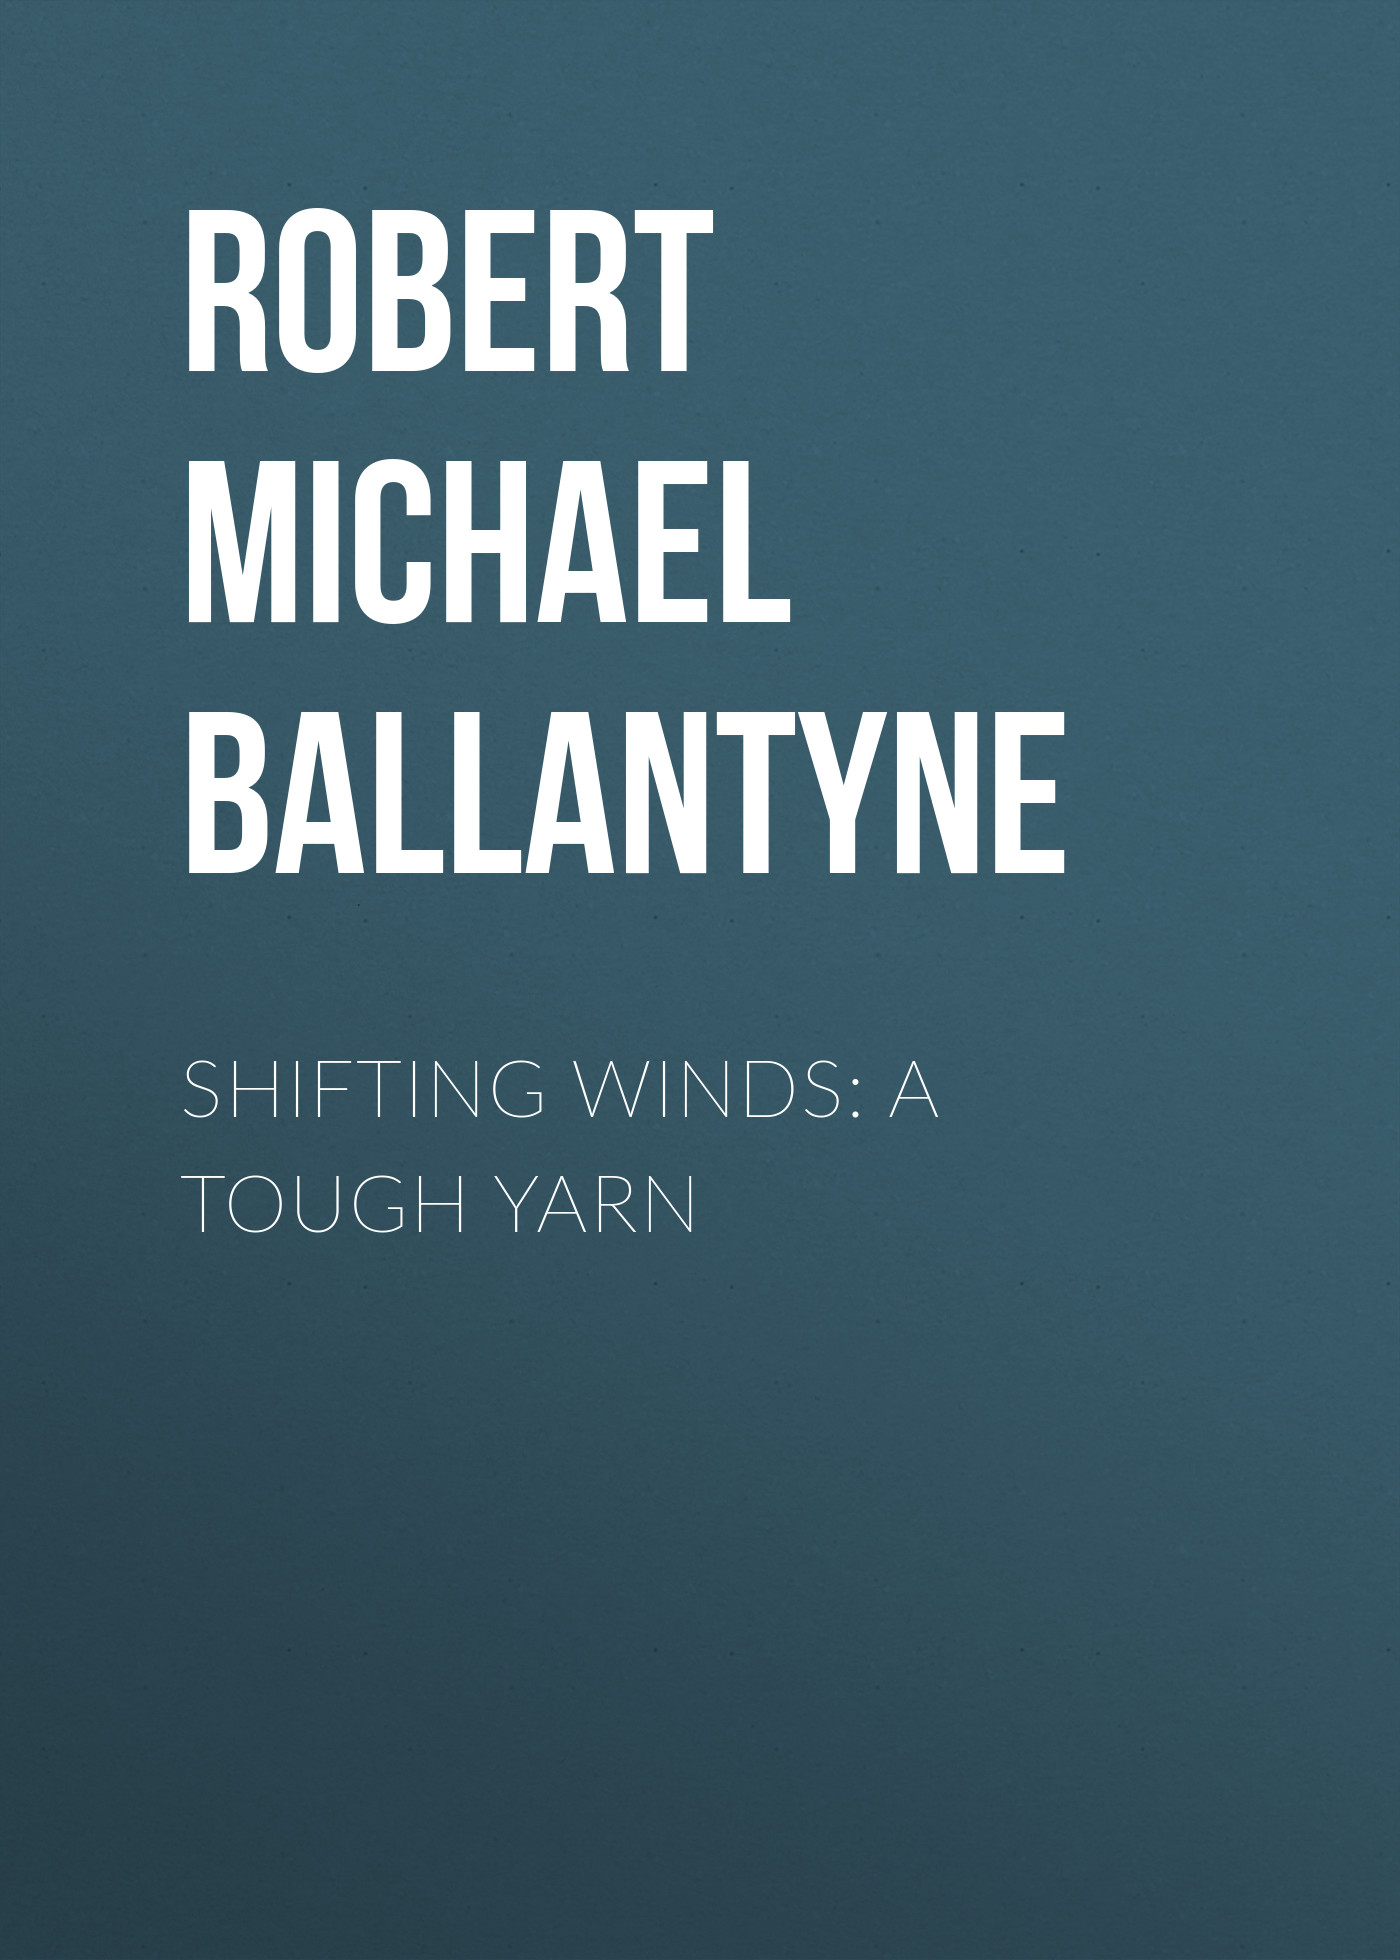 Robert Michael Ballantyne Shifting Winds: A Tough Yarn